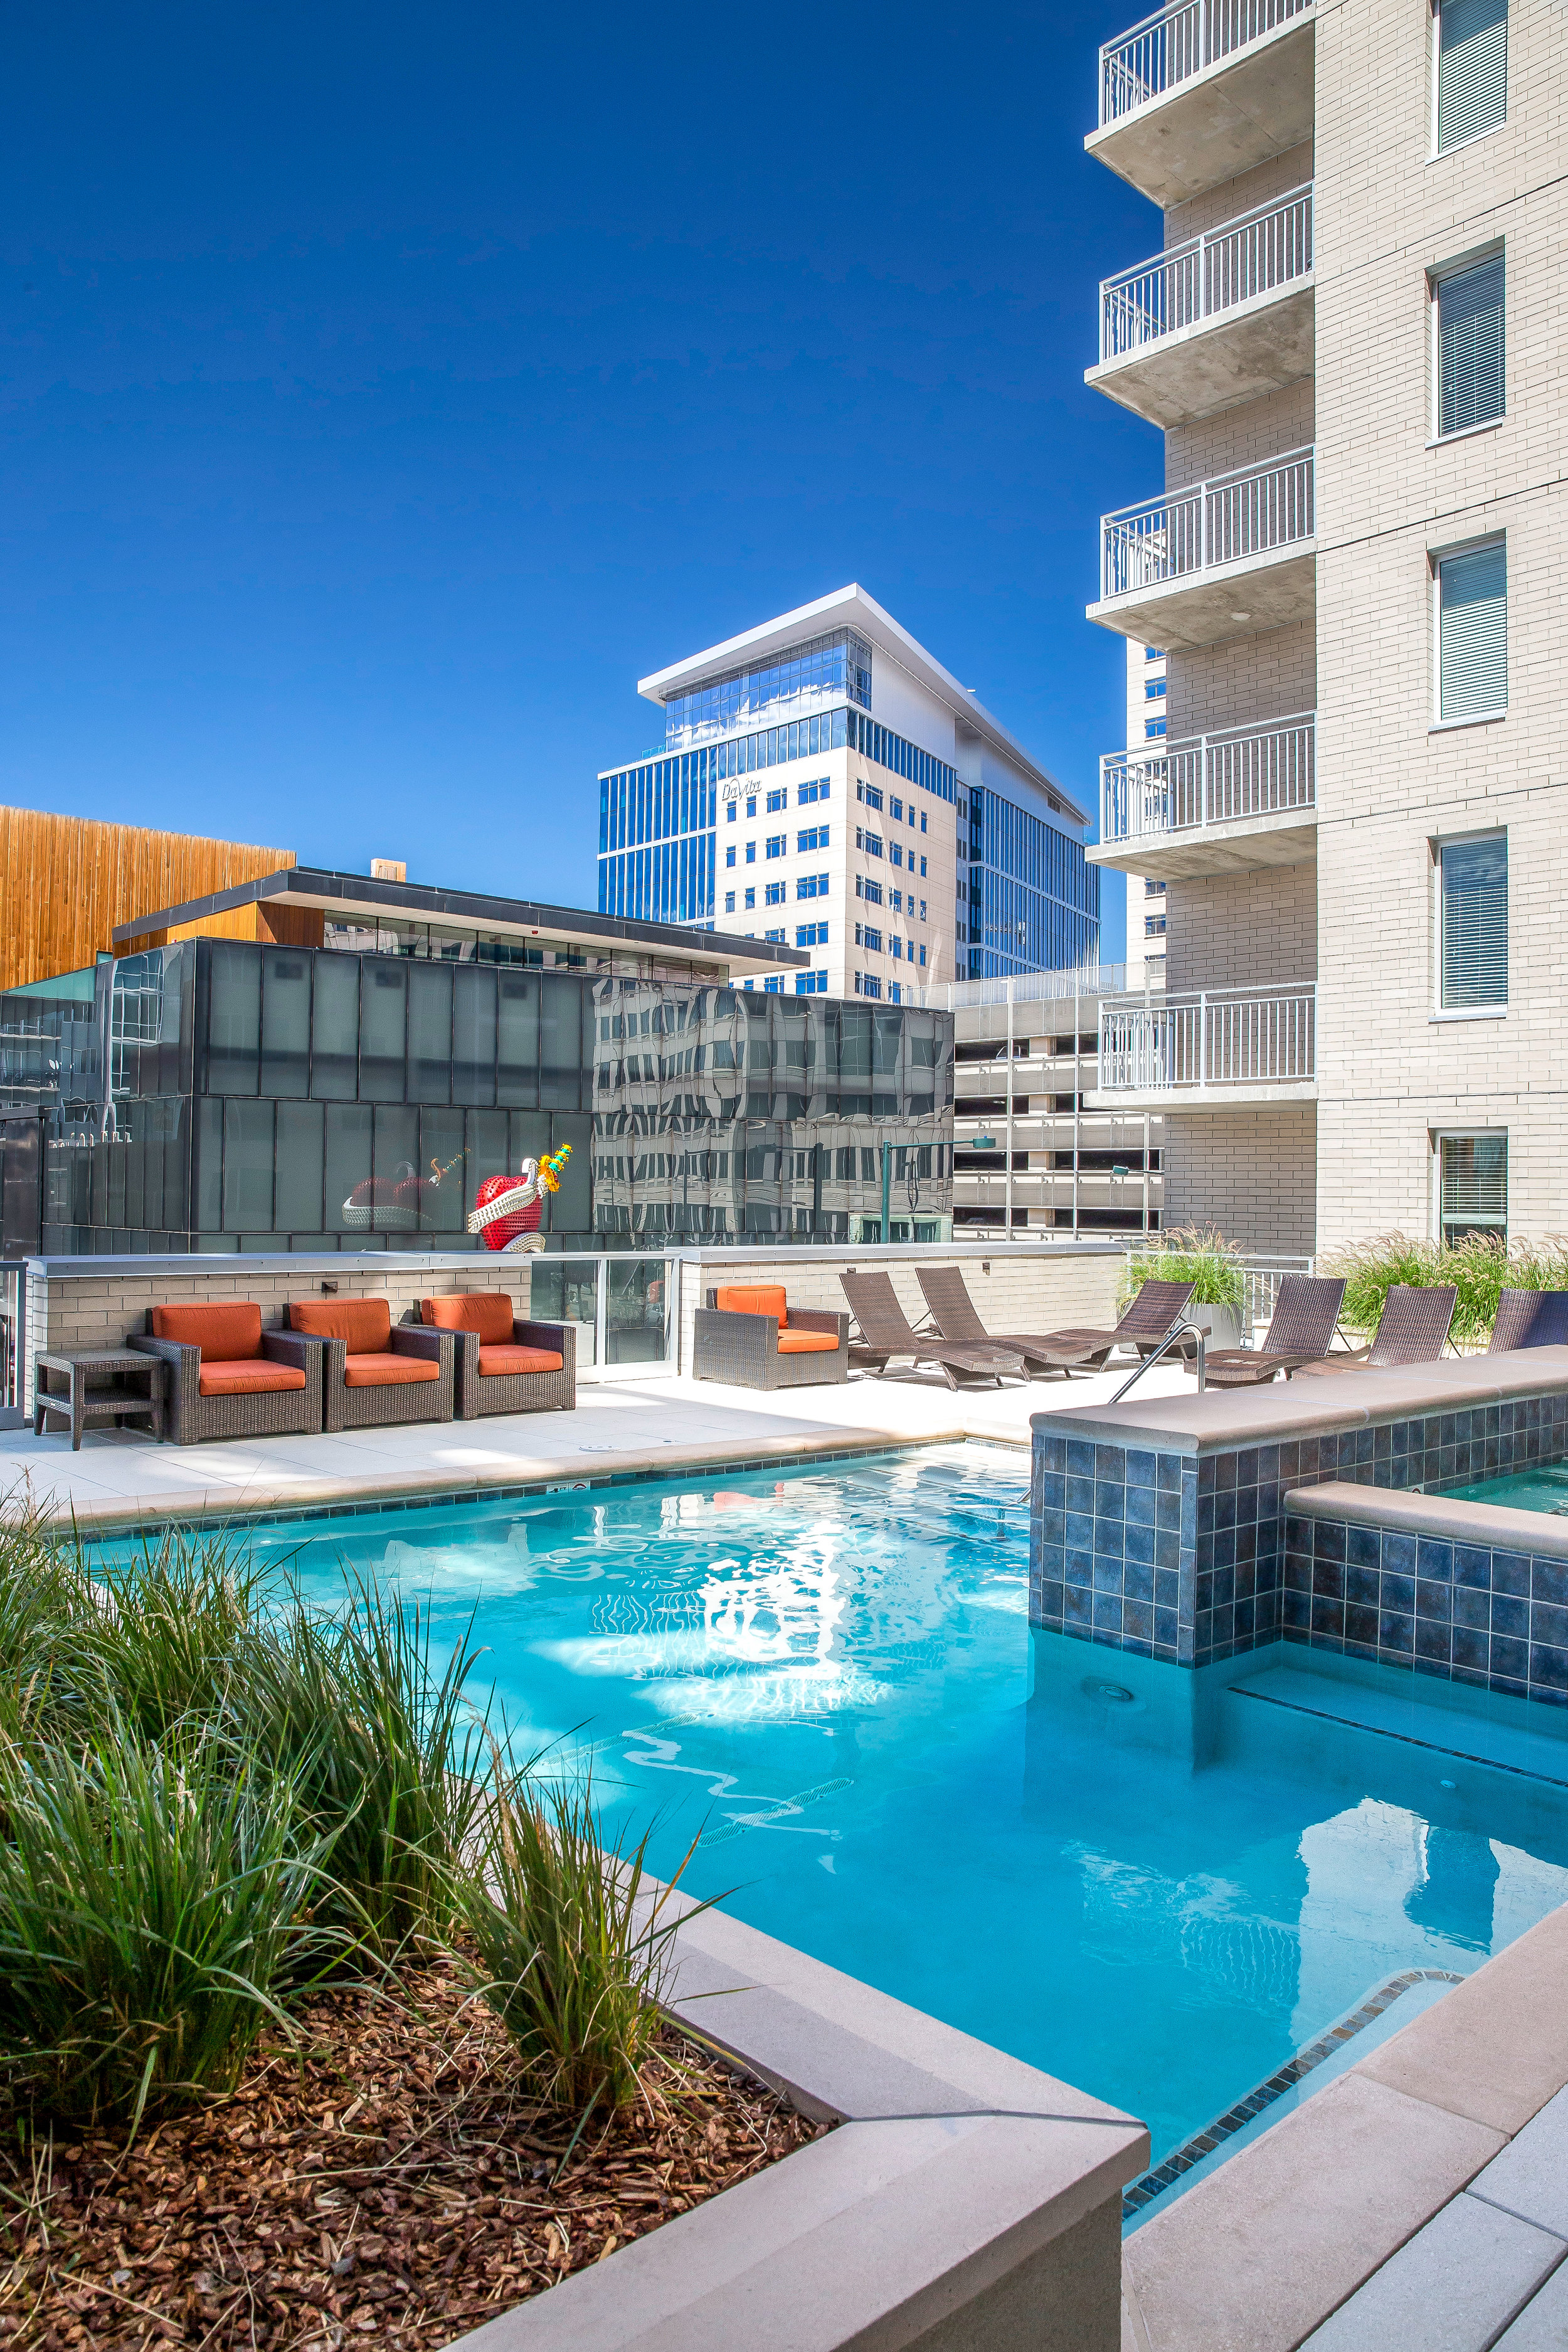 """<img src="""" studioINSITE_The_Verve_Pool_Deck-3 """"alt=""""Urban Living, Multifamily Courtyard, Amenity Deck, Fire Pit, Grill Area, Shade Structure, Outdoor Garden,  Landscape Architecture, Luxury Living, the Douglas, Denver, CO, Colorado Courtyards, Amenity Spaces, Great Courtyard Designs"""" title=""""The Verve""""/>"""